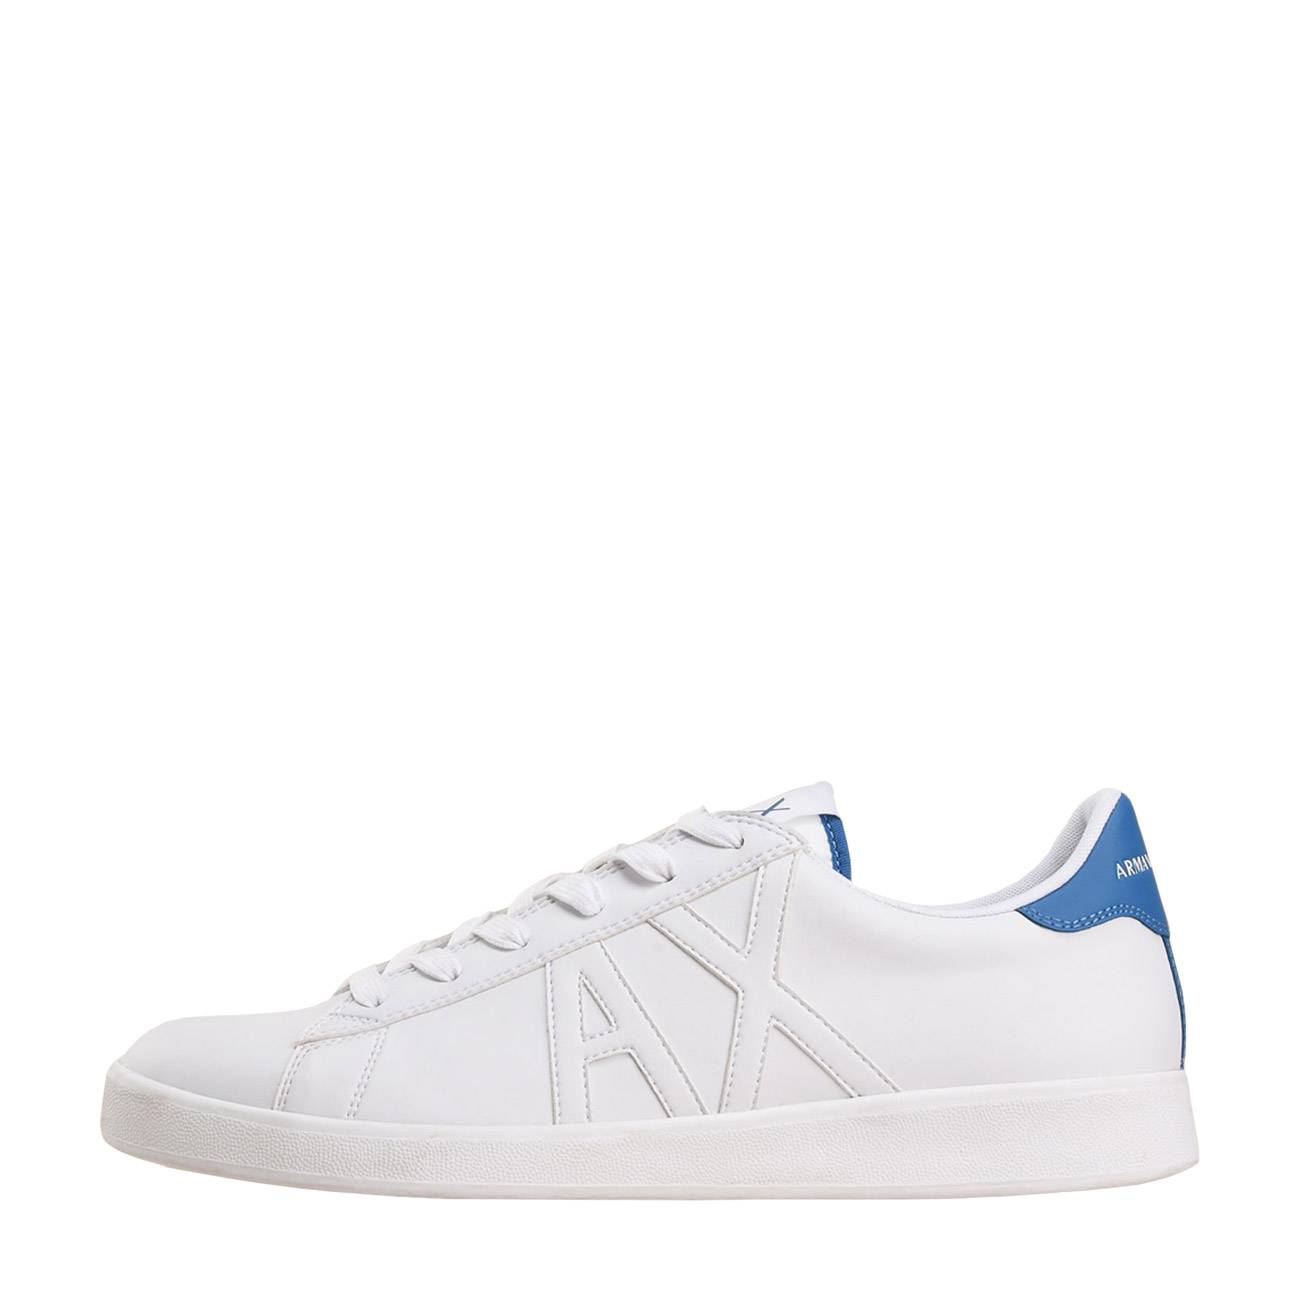 COLORBLOCK ACCENT LOW-TOP SNEAKERS 44